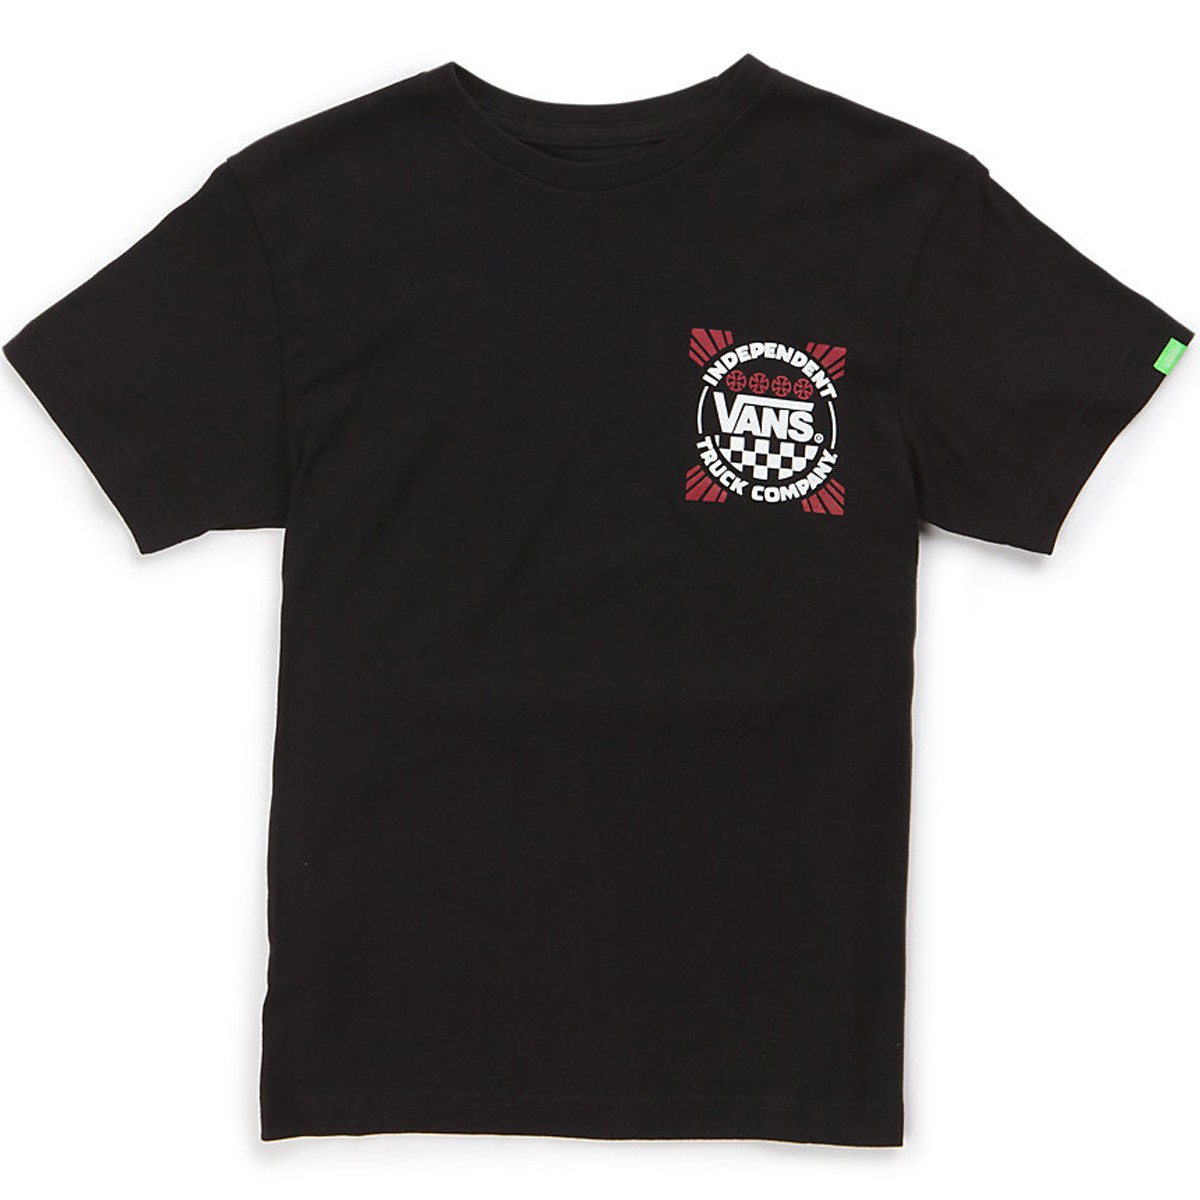 Vans Indy Logo Boys T-Shirt - Black